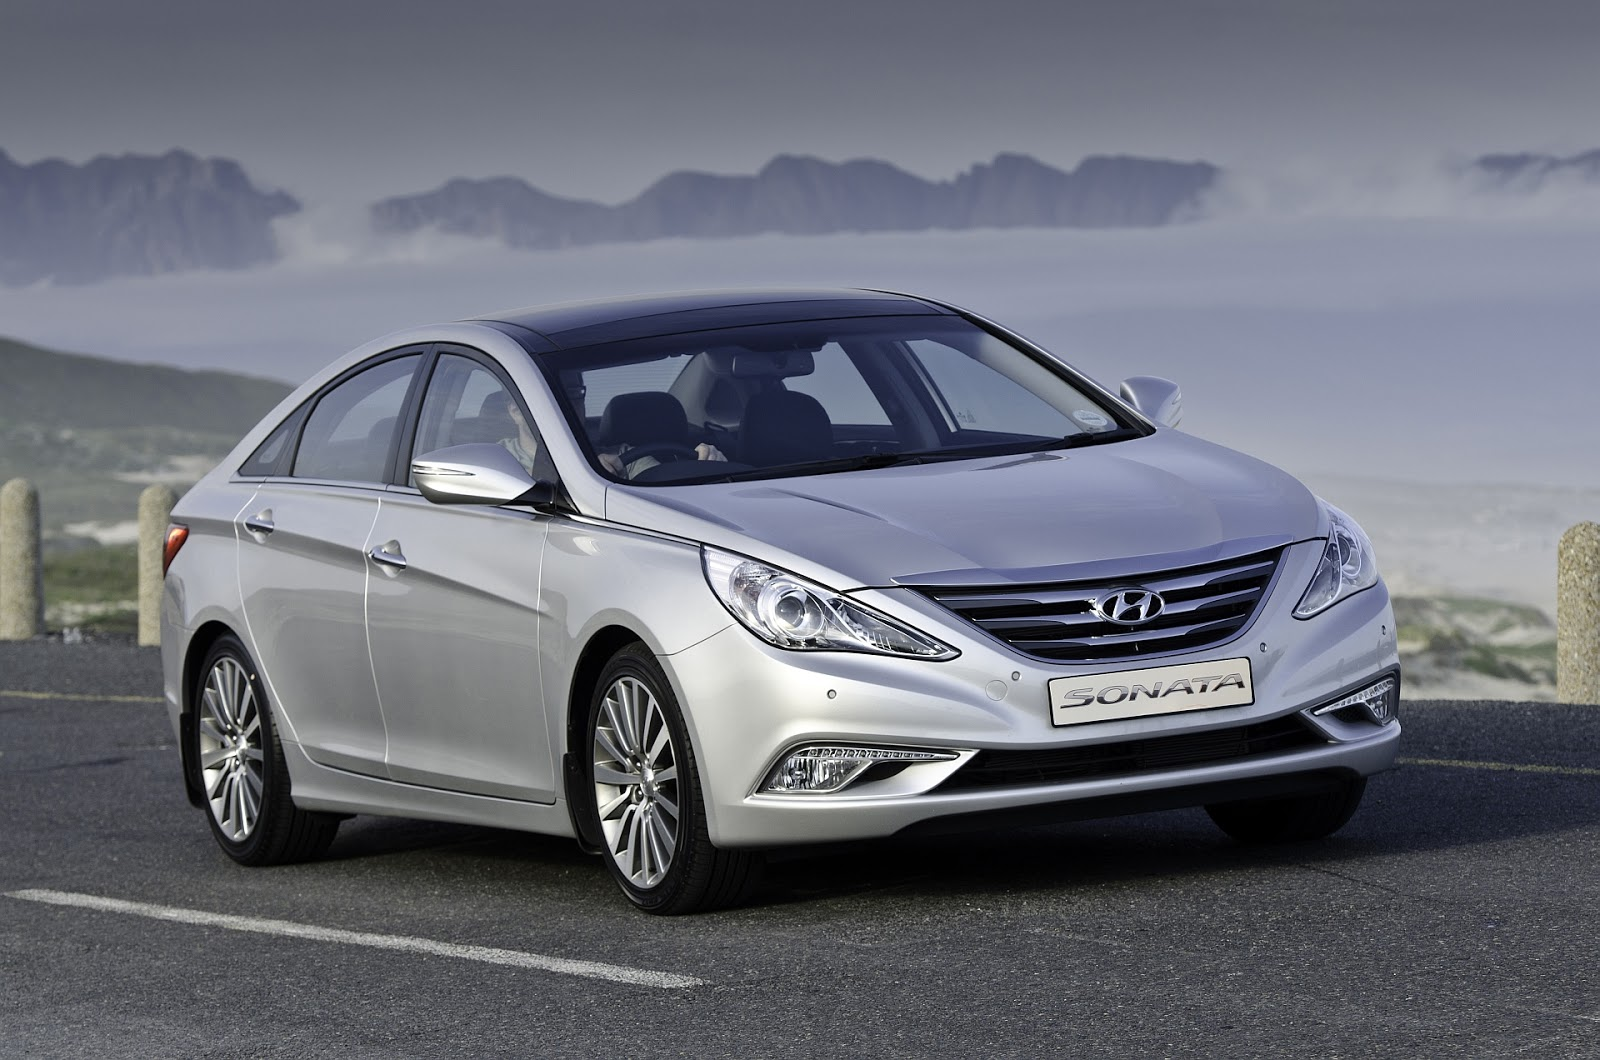 hyundai sonata updated with new engine awesome cars hyundai sonata updated with new engine. Black Bedroom Furniture Sets. Home Design Ideas